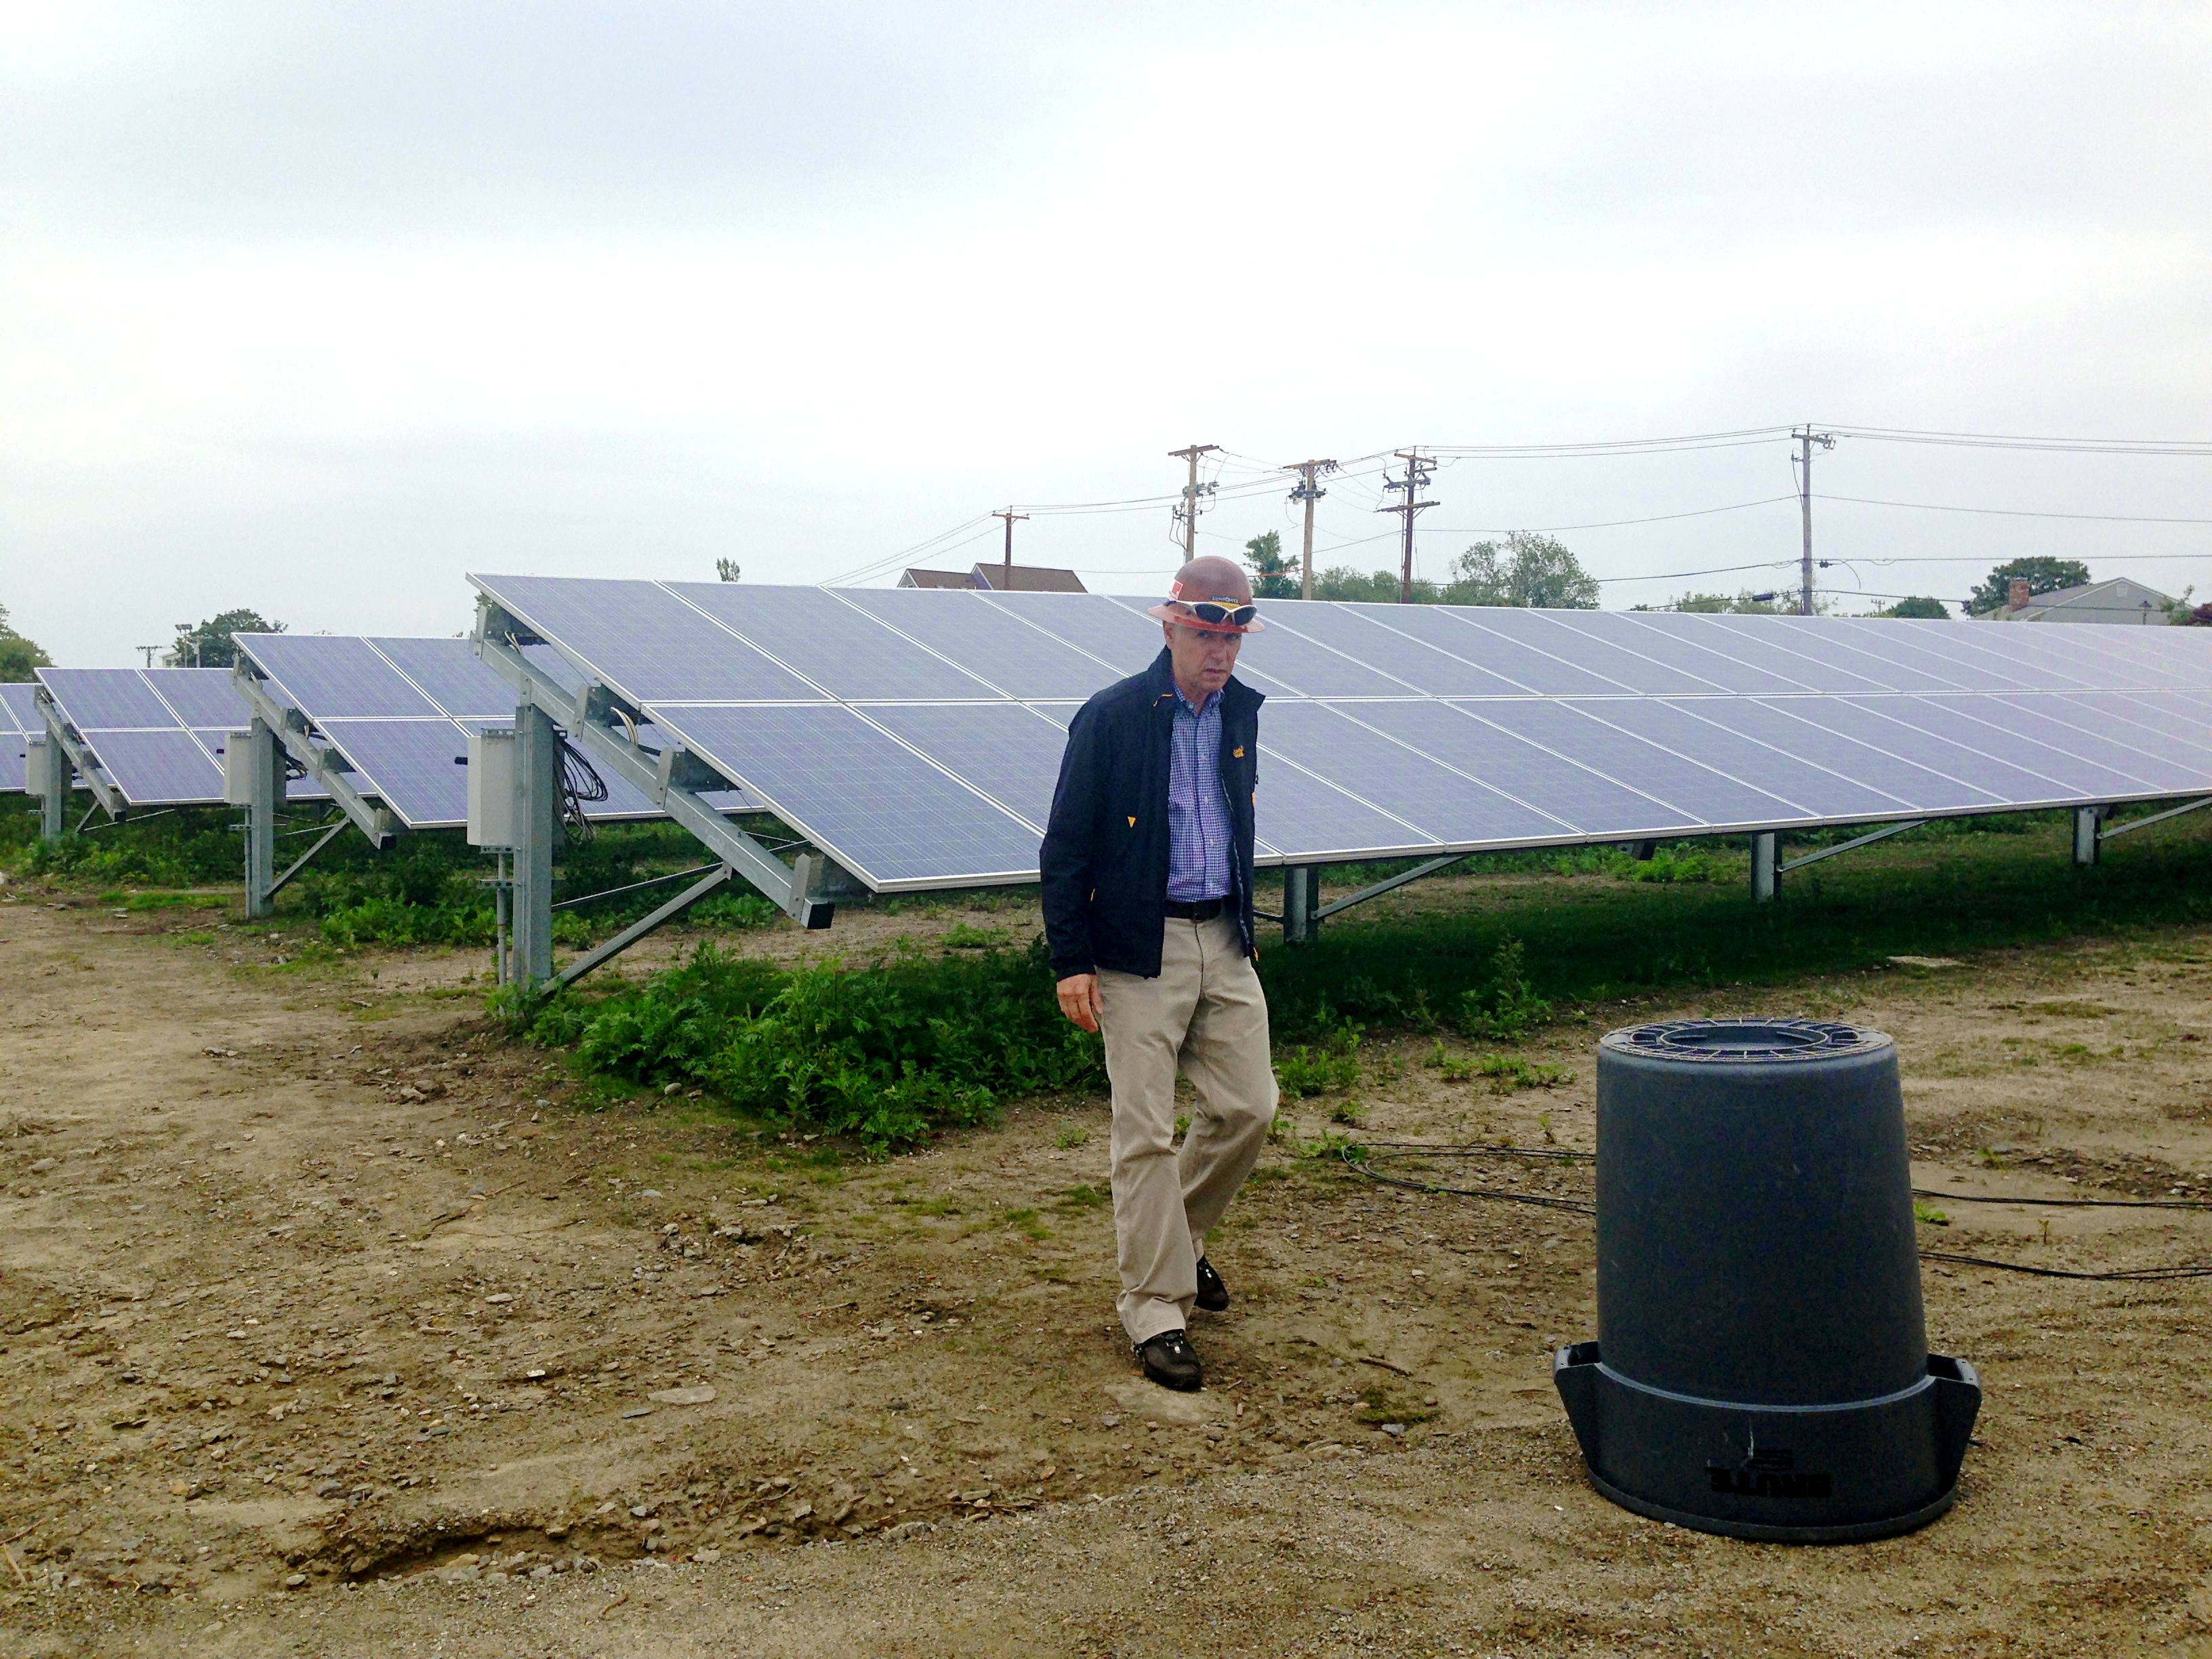 Beaumont Solar's CEO Phil Cavallo